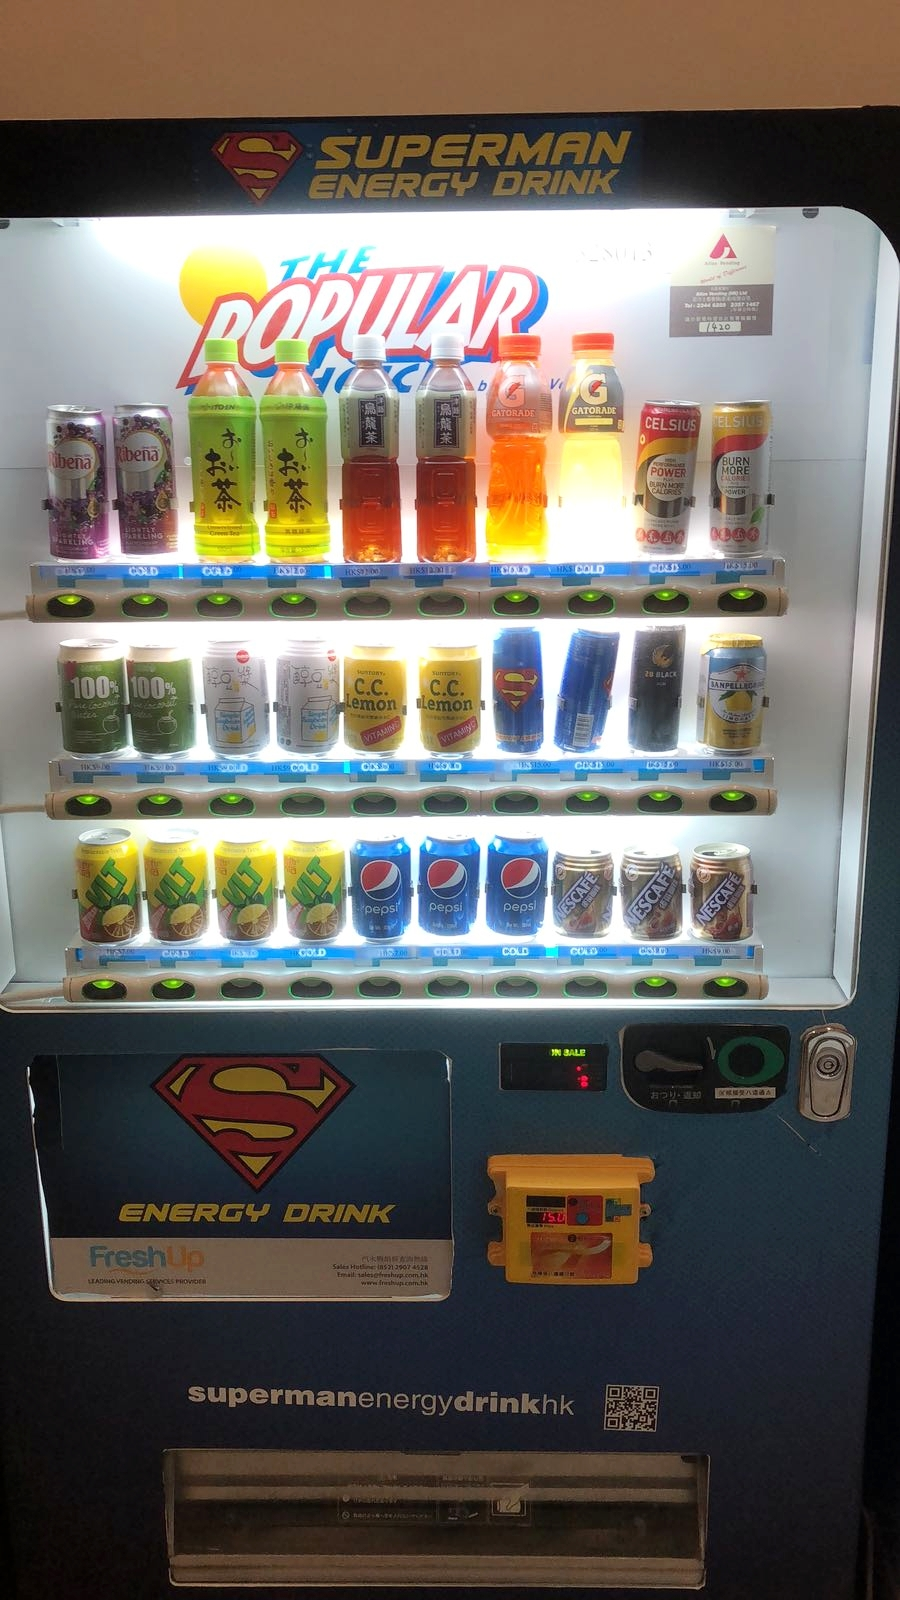 Freshup, vending machine hk, interactive, food, beverage, smart retail, convenient, vending services, professional, investment banks, HSBC